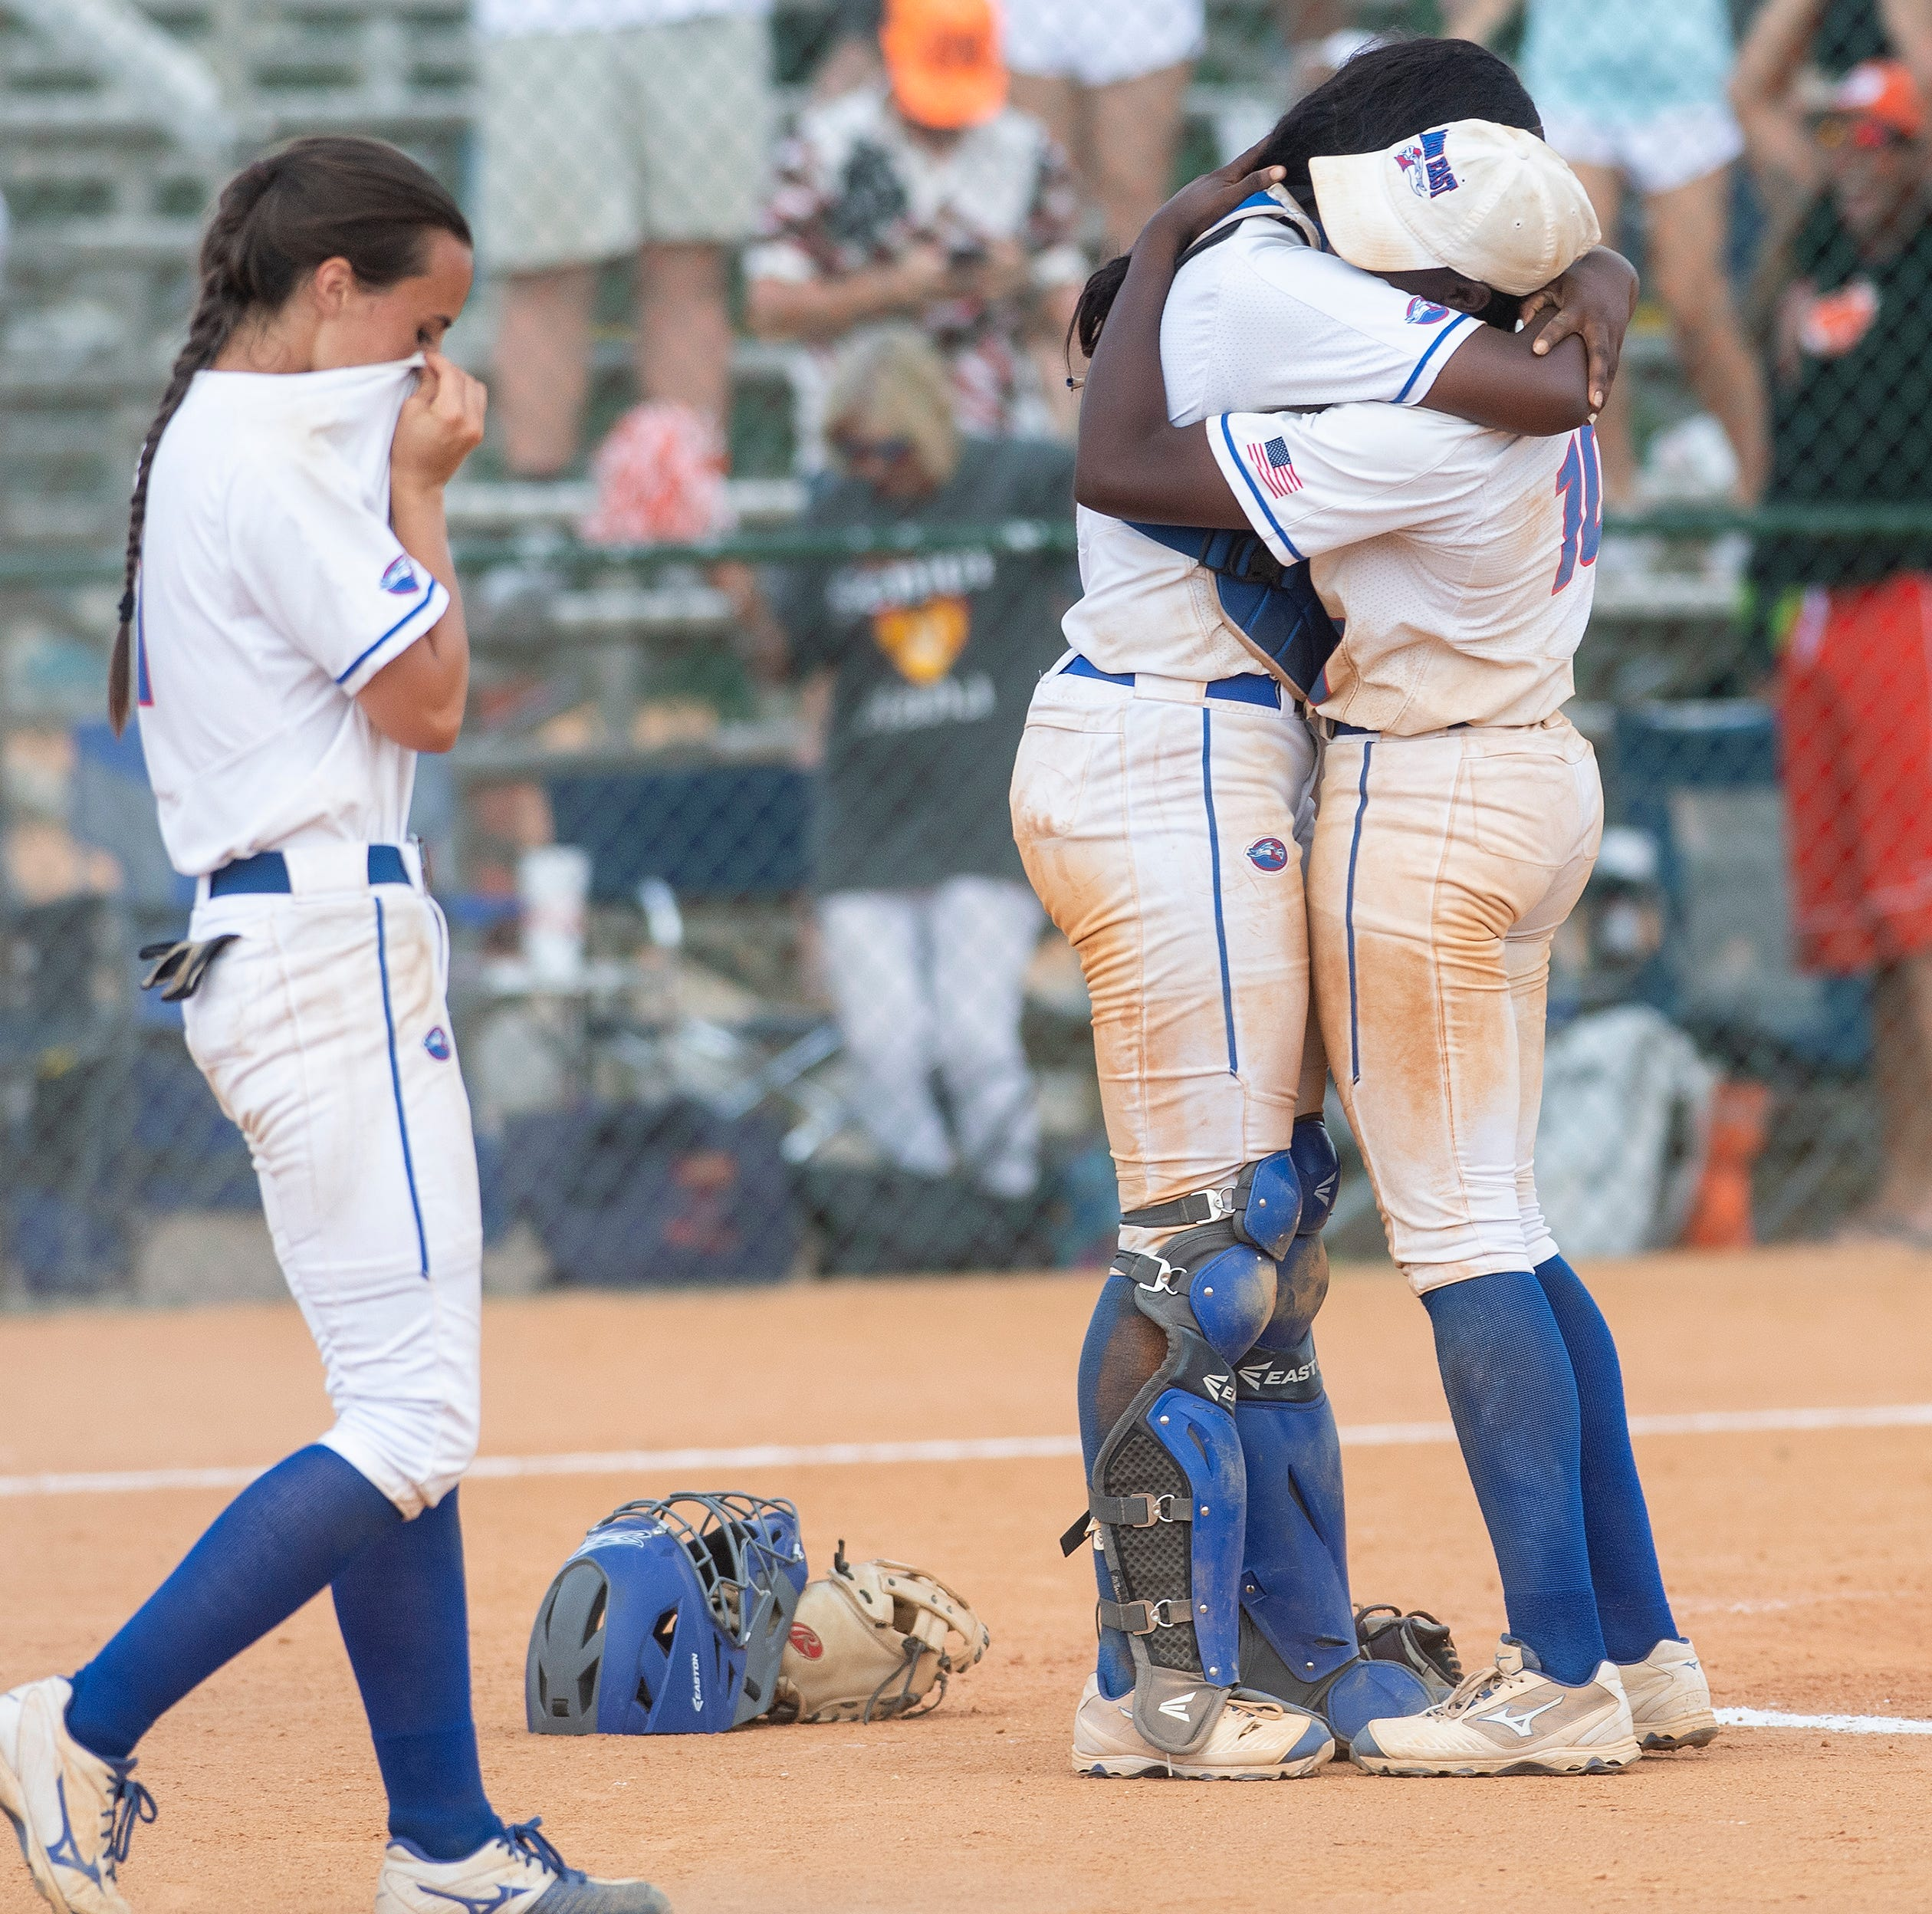 Disappointment: To Macon-East, being runner-up a letdown